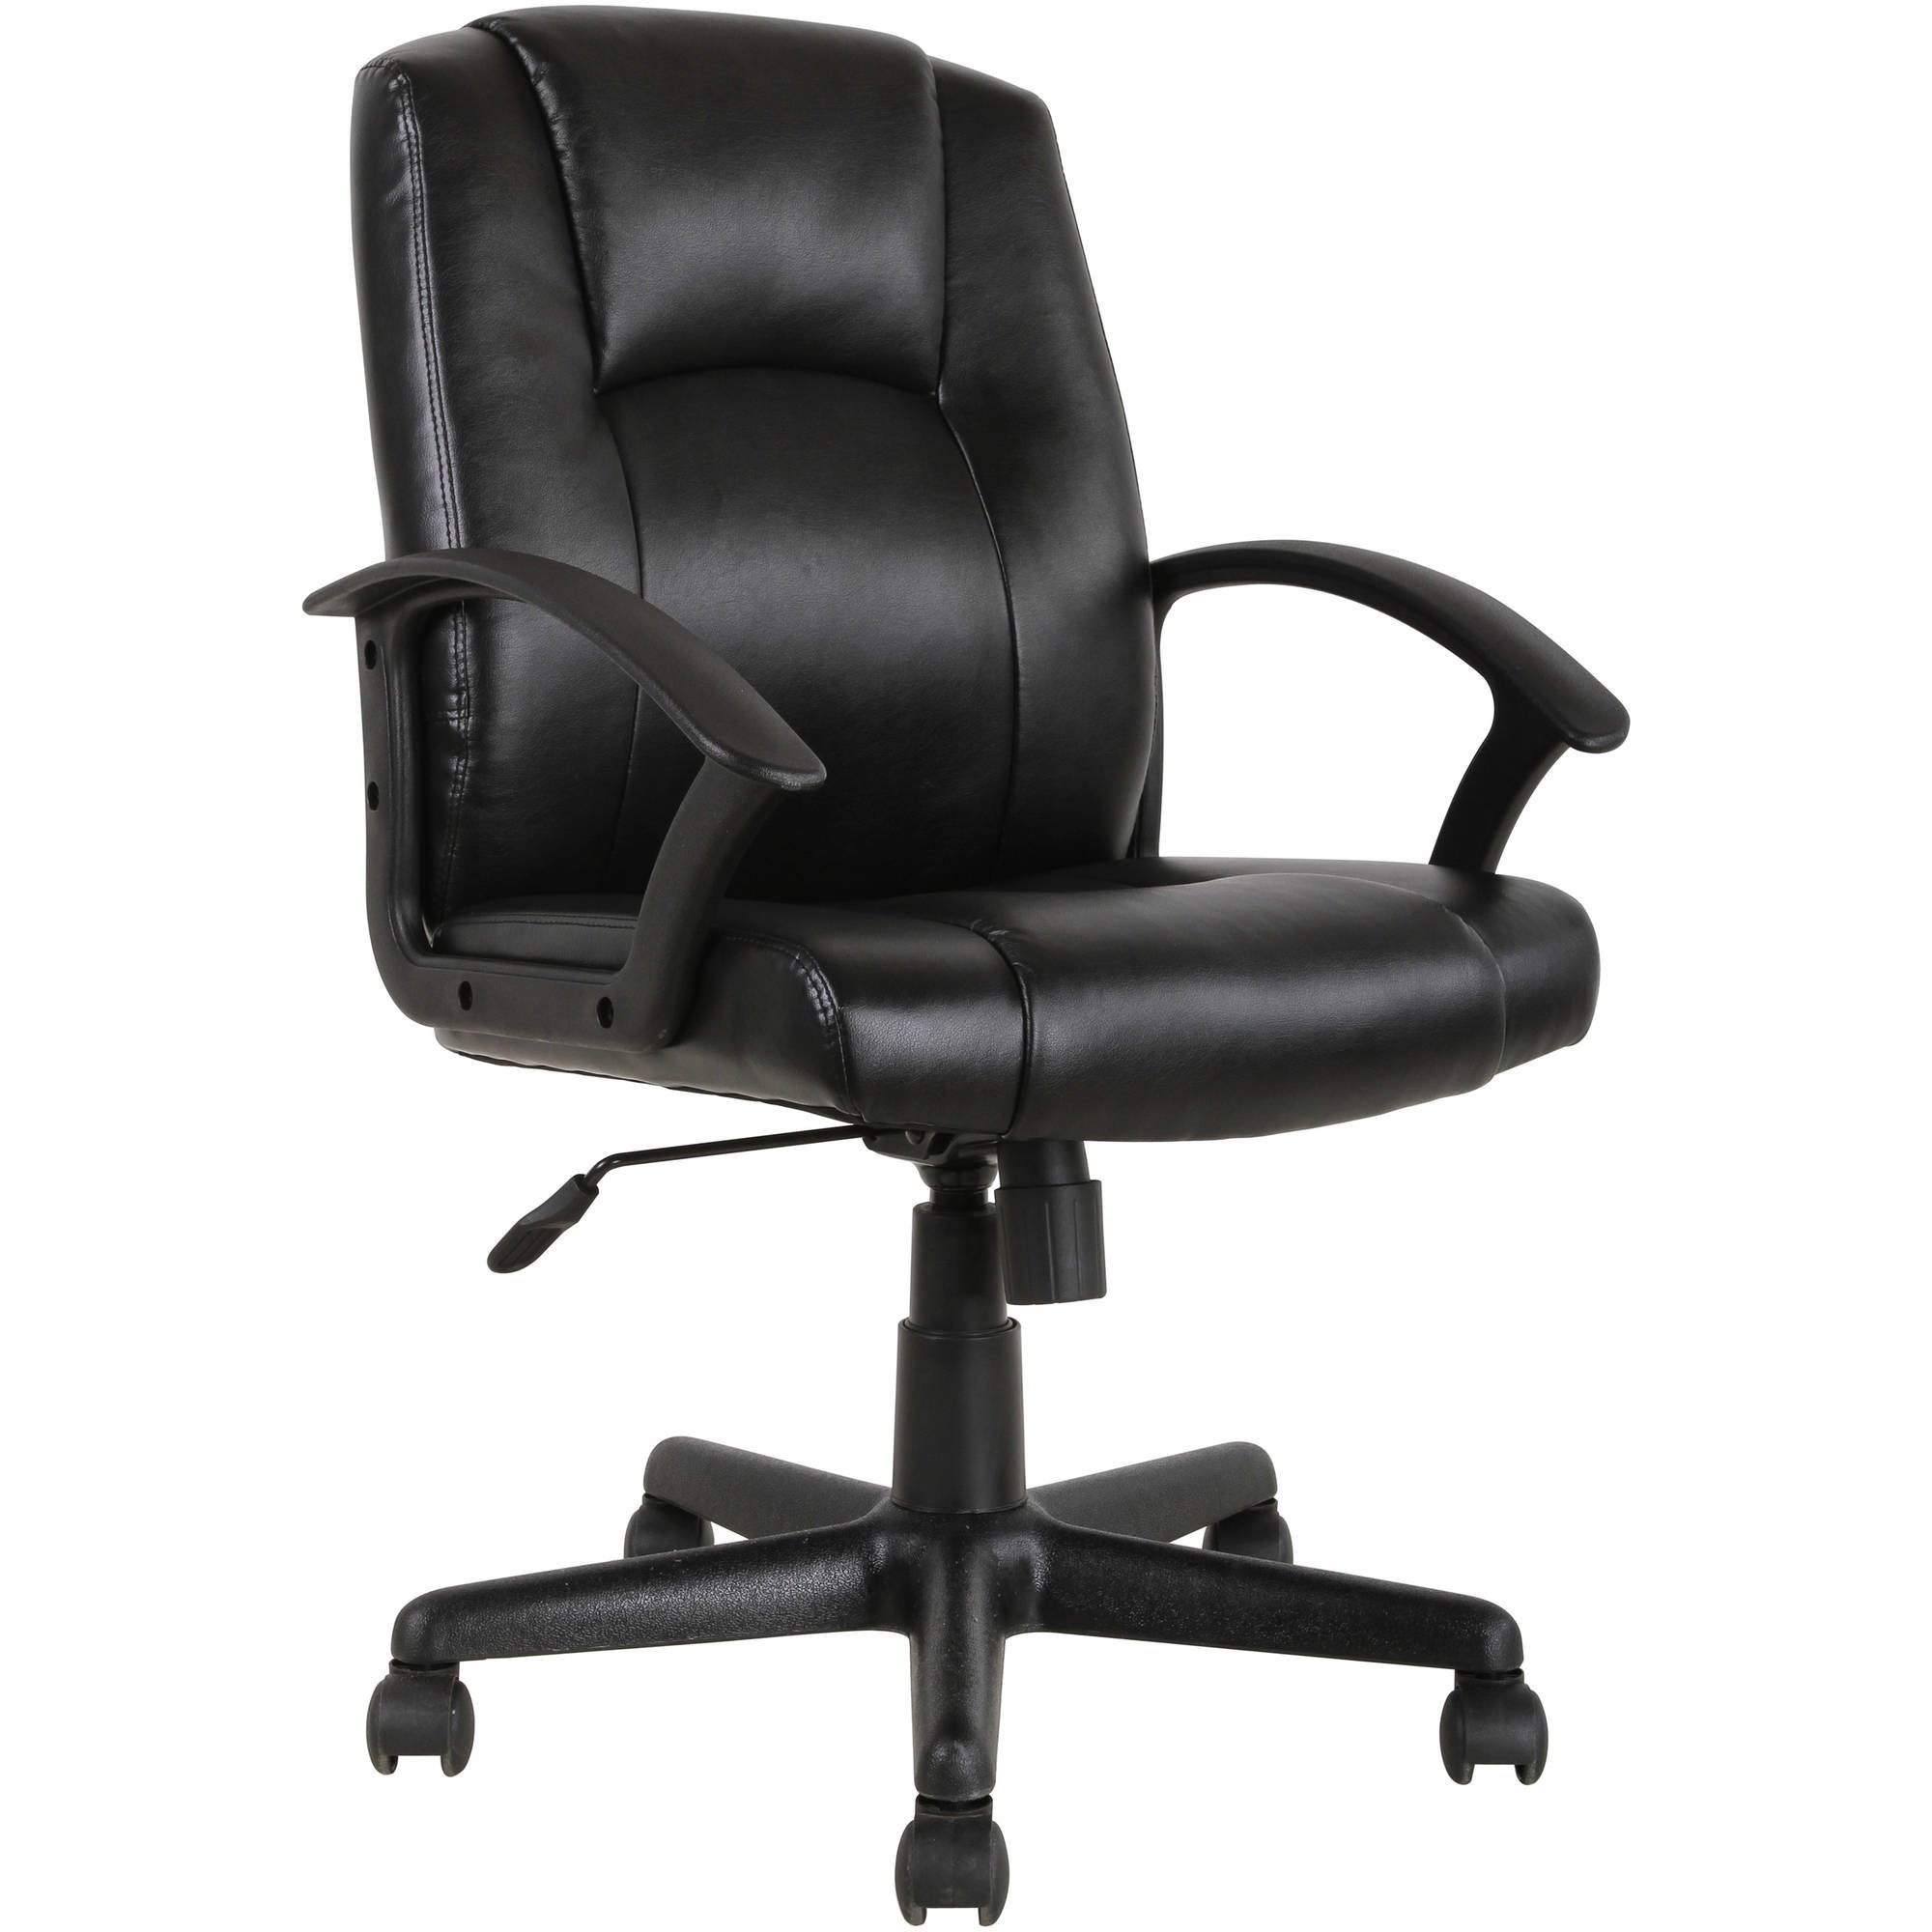 Delightful Mainstays Mid Back Leather Office Chair, Black